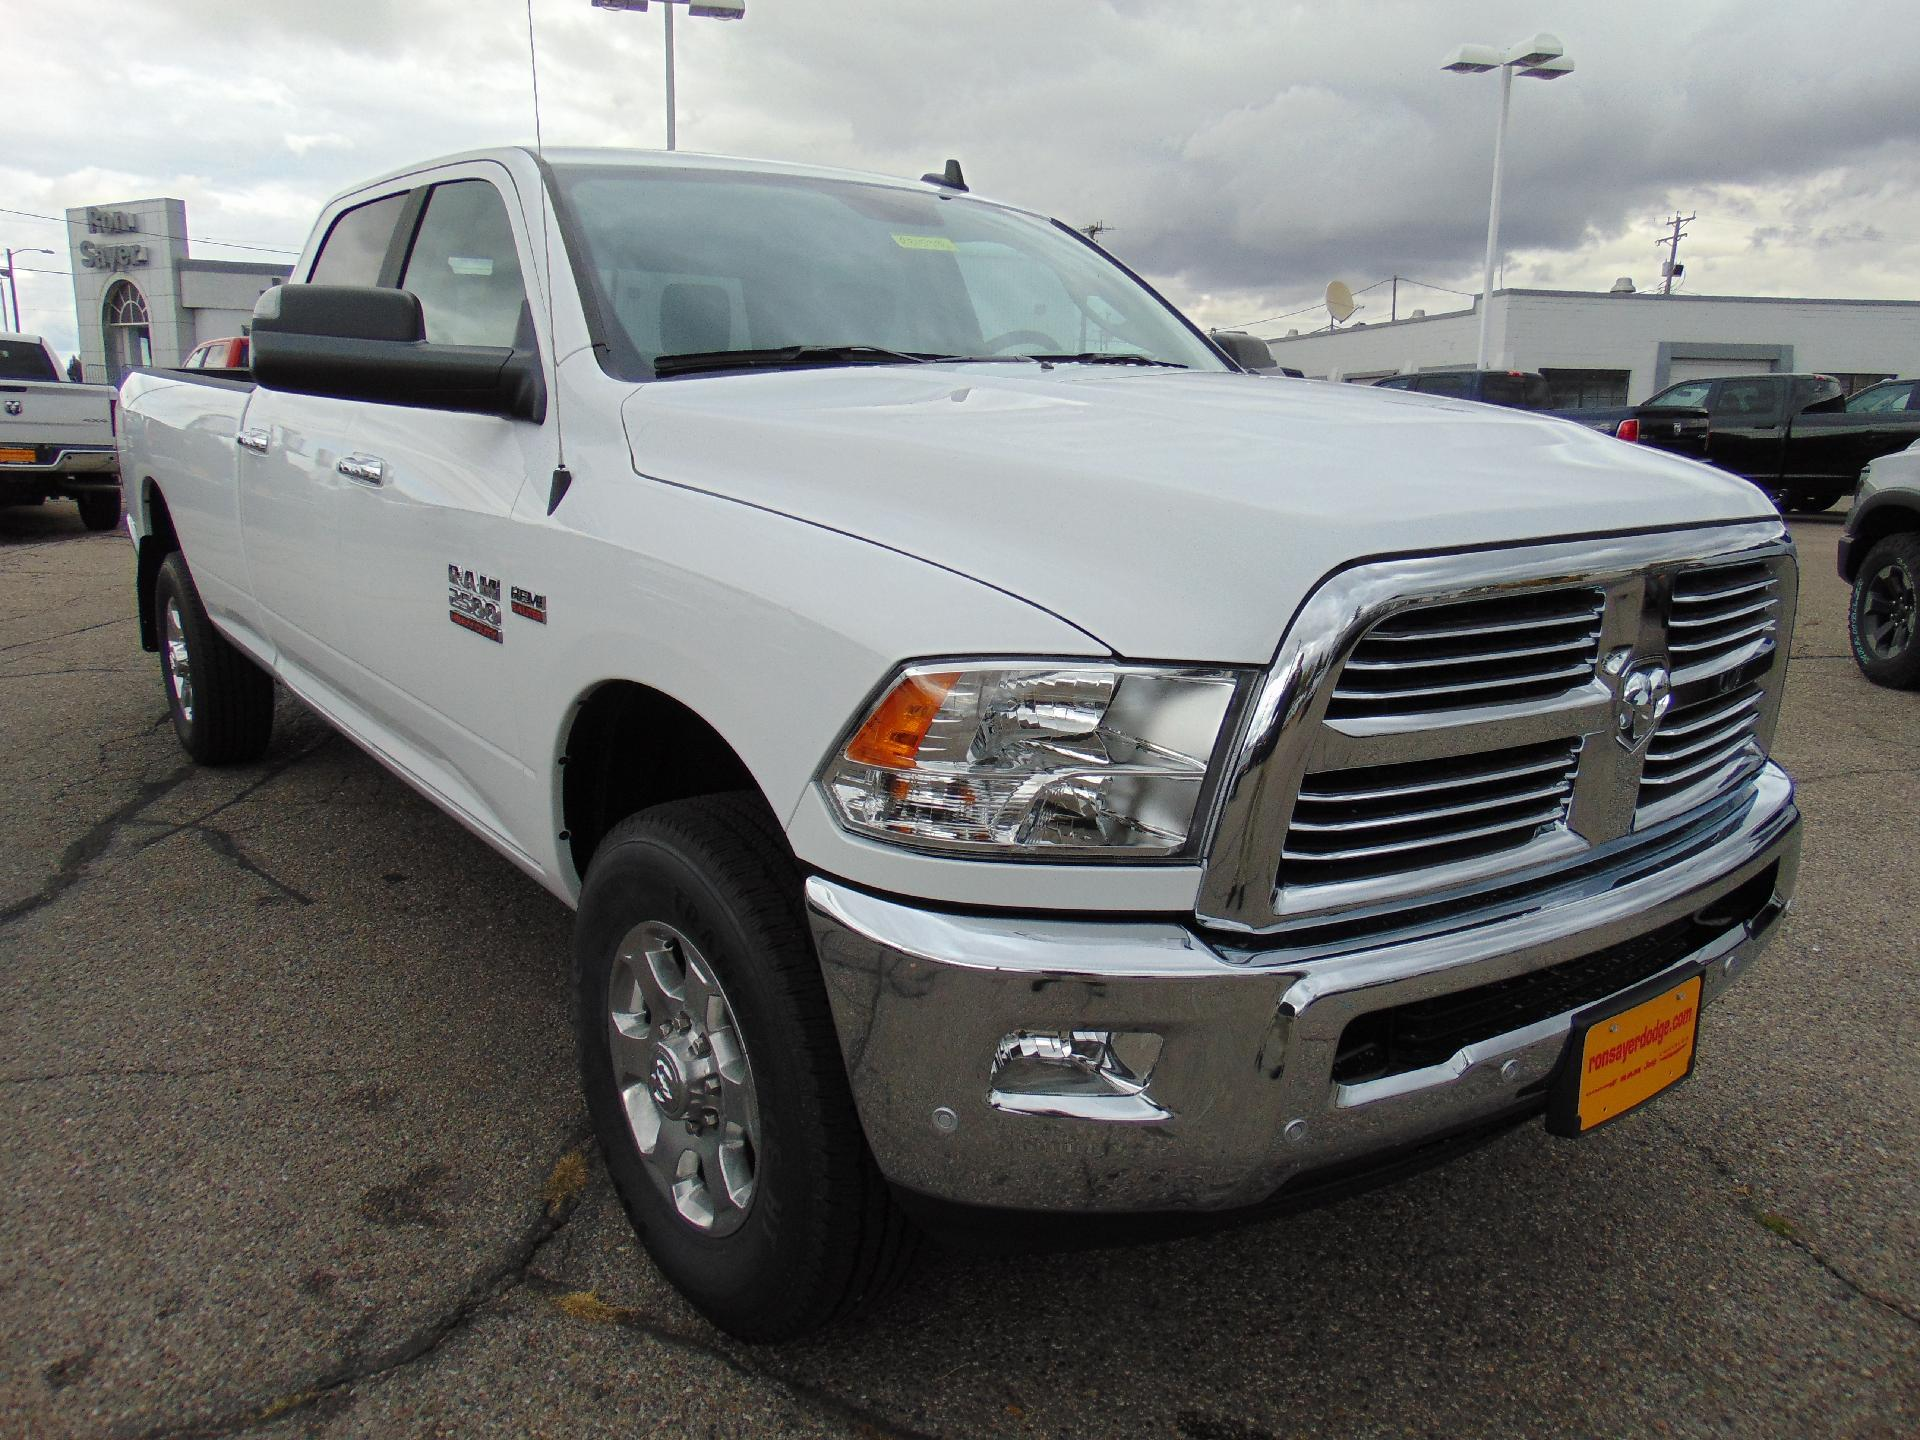 ram  big horn crew cab  idaho falls  ron sayers chrysler jeep dodge